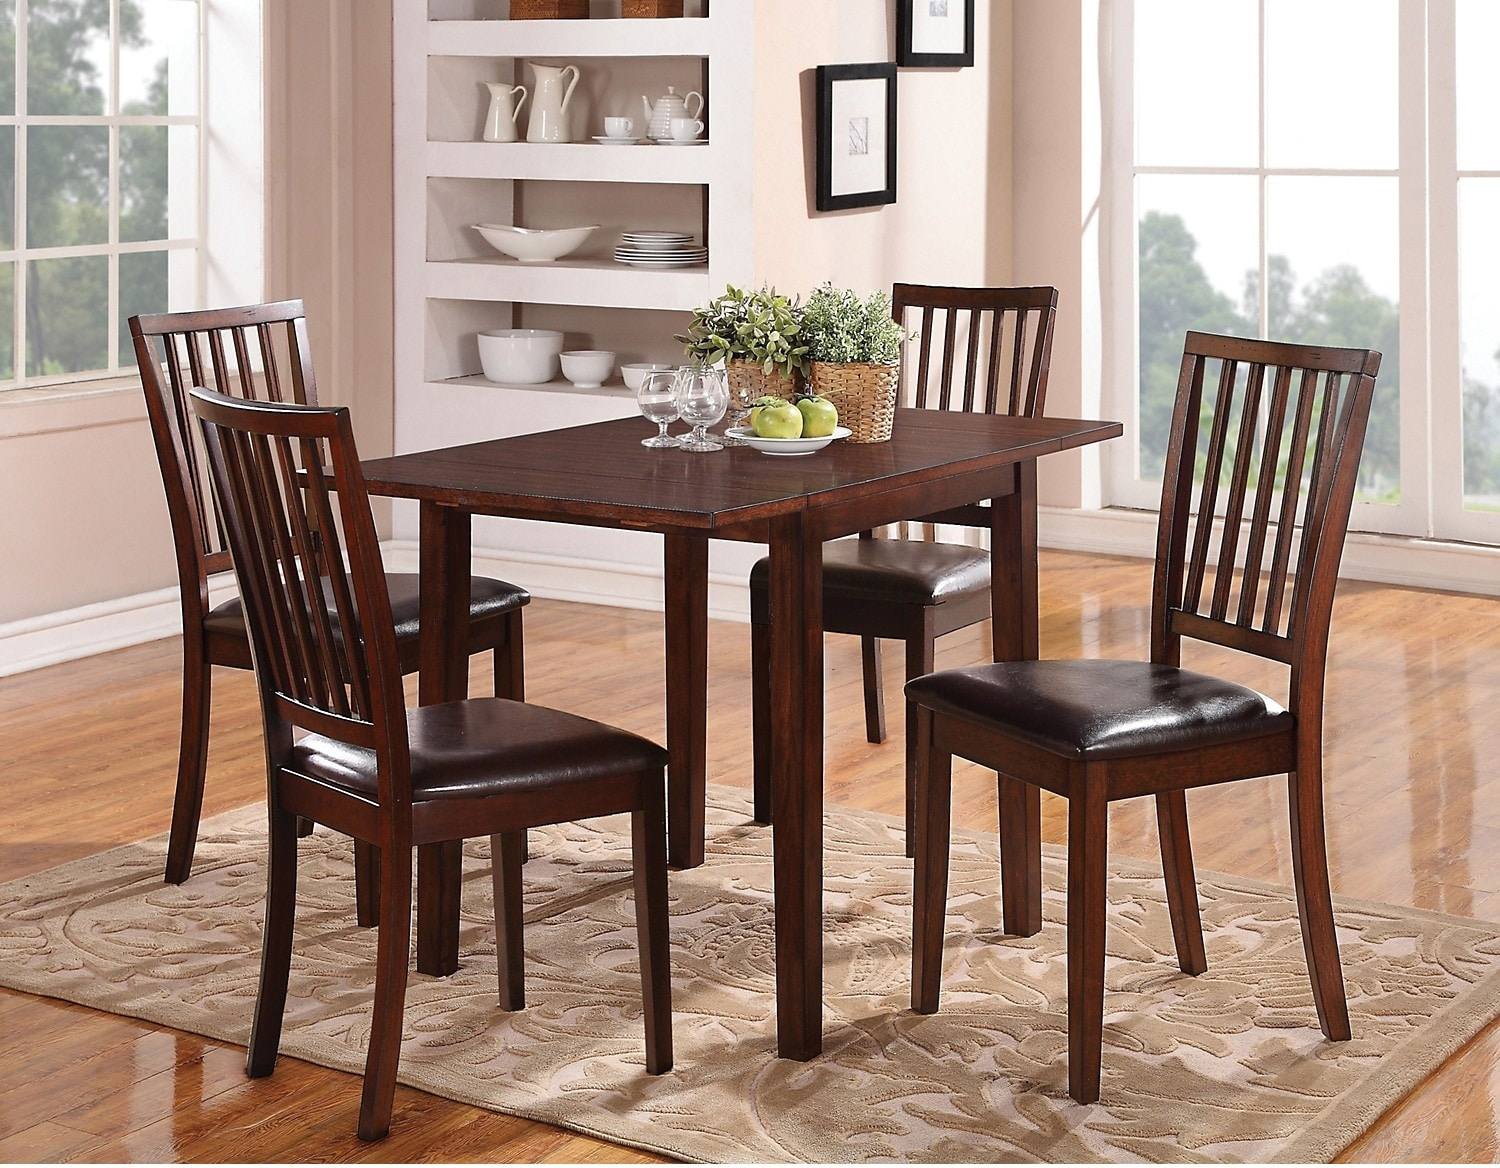 Adara 5-Piece Square Table Dining Package